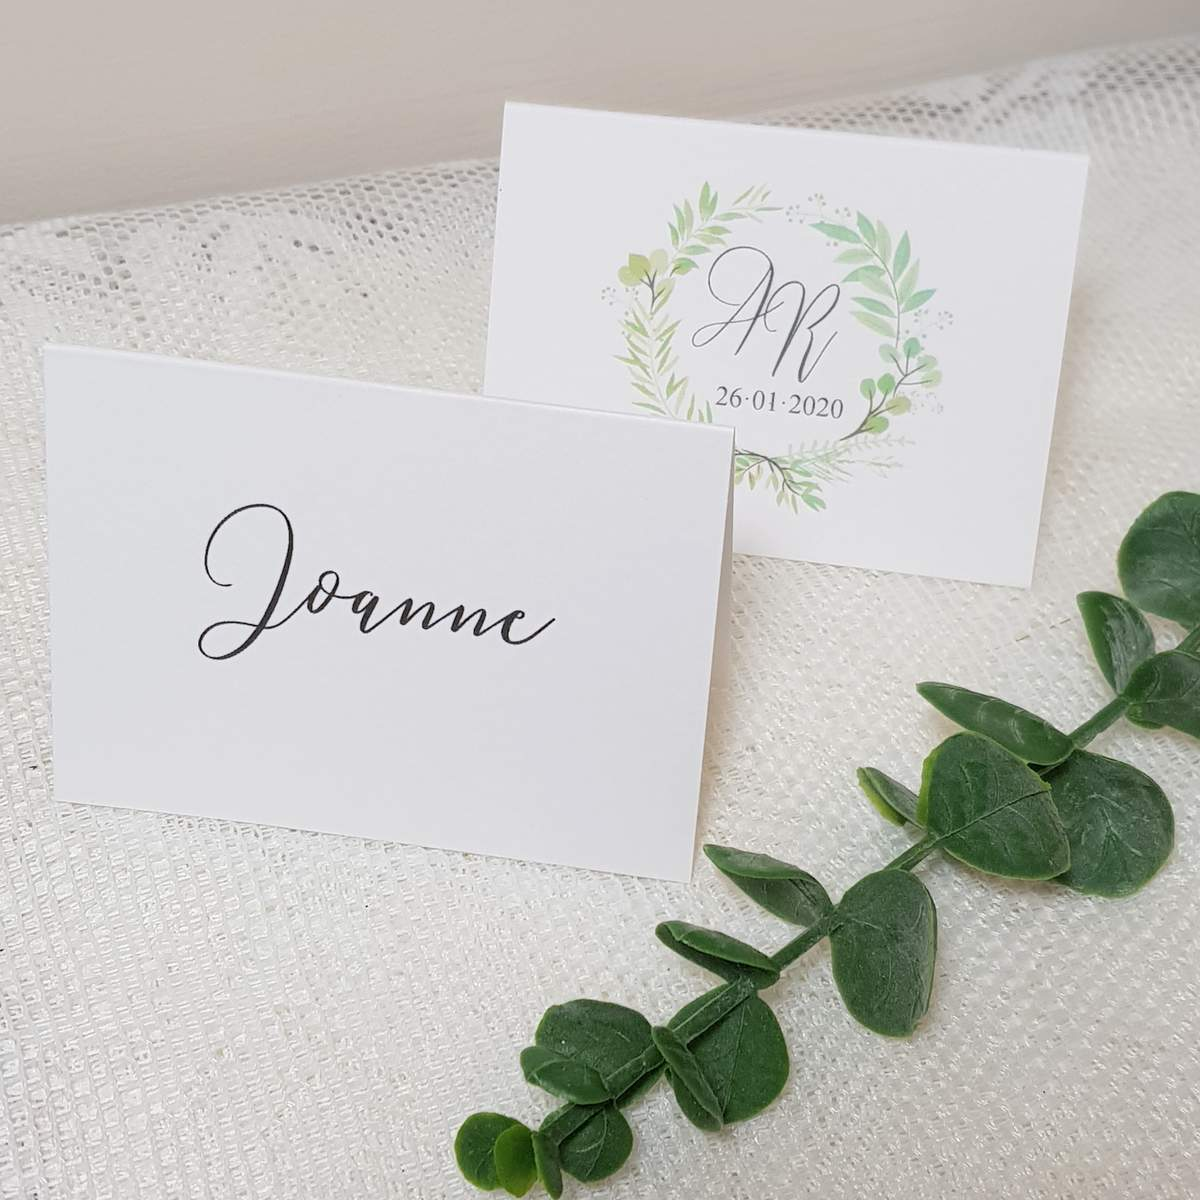 white place cards with a greenery wreath design